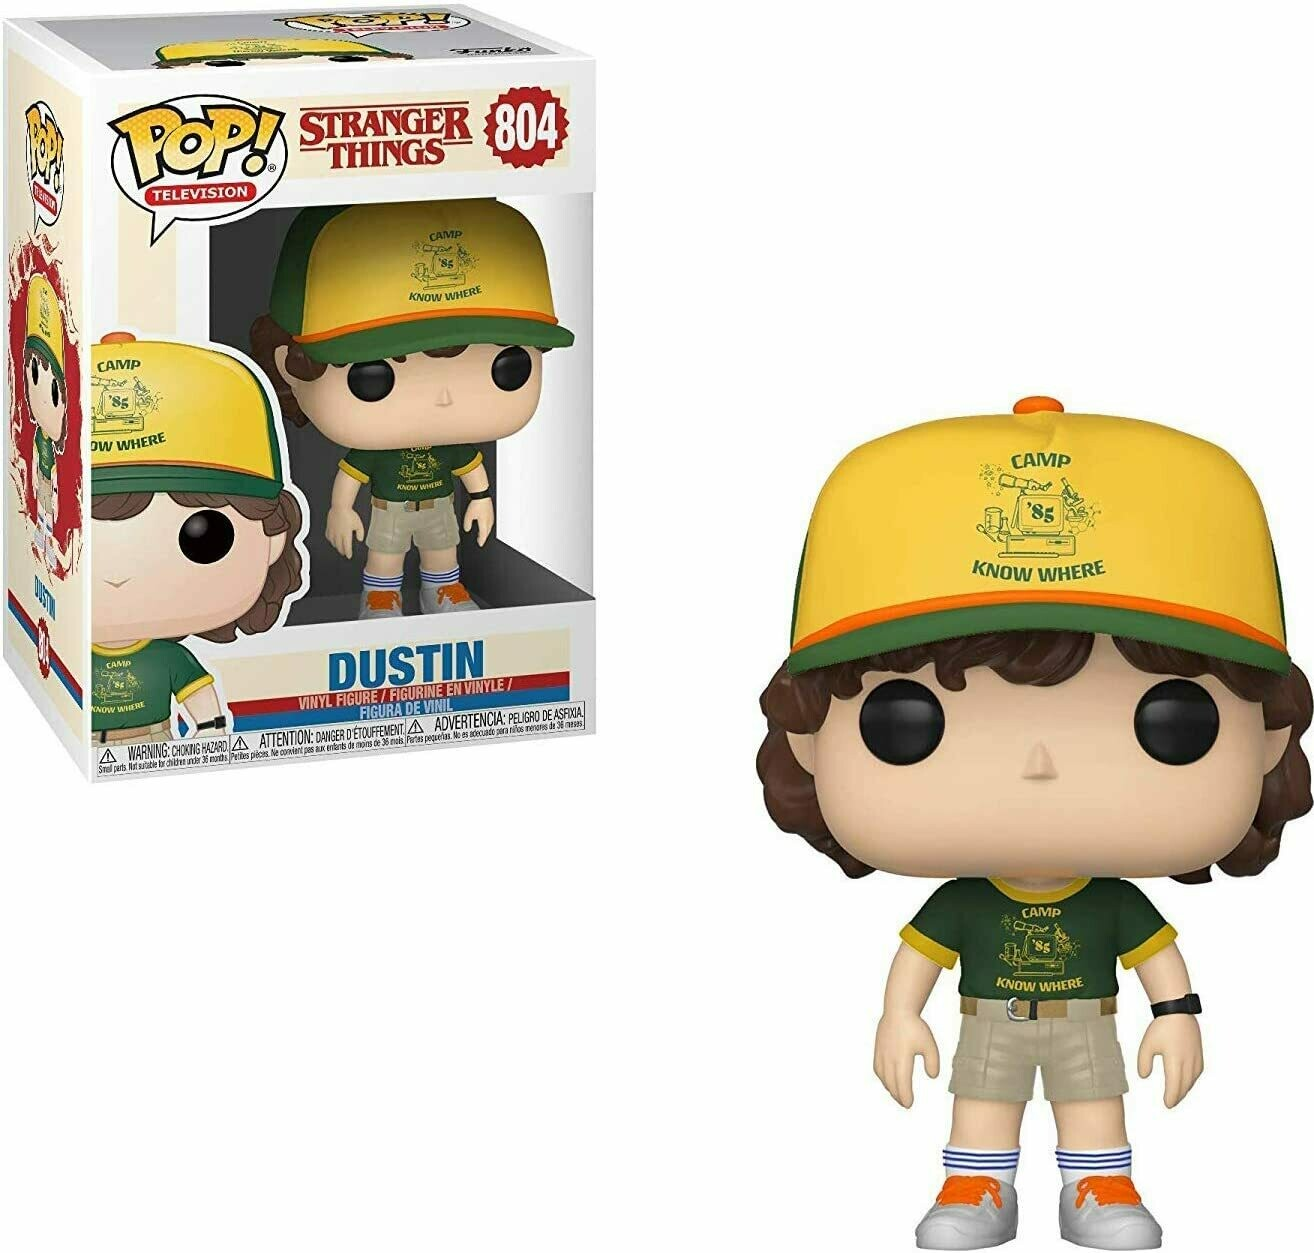 Funko Pop! Dustin #804 Stranger Things